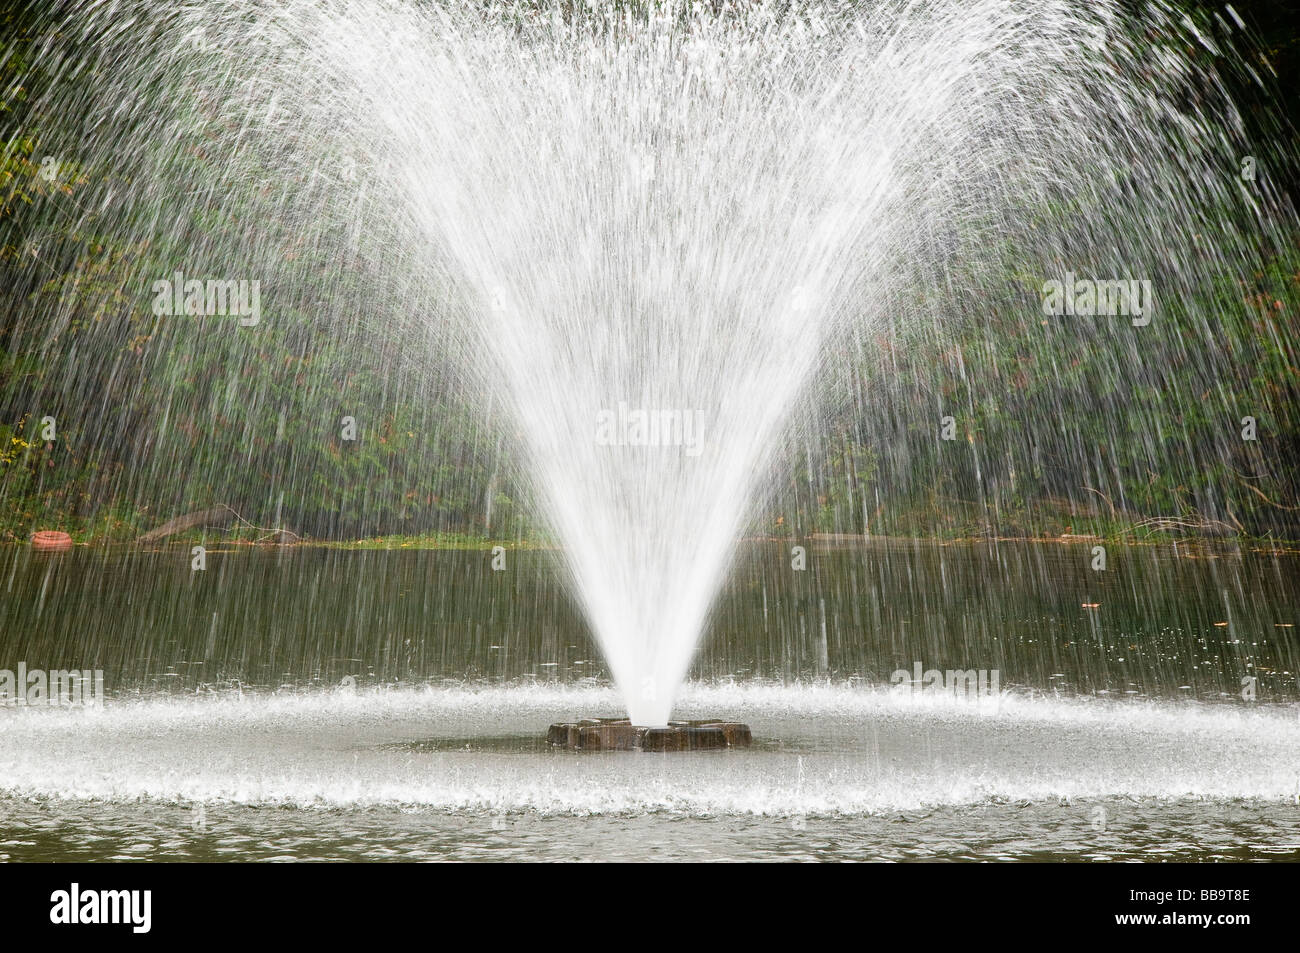 Water Fountain in Balfountain Ontario Canada - Stock Image